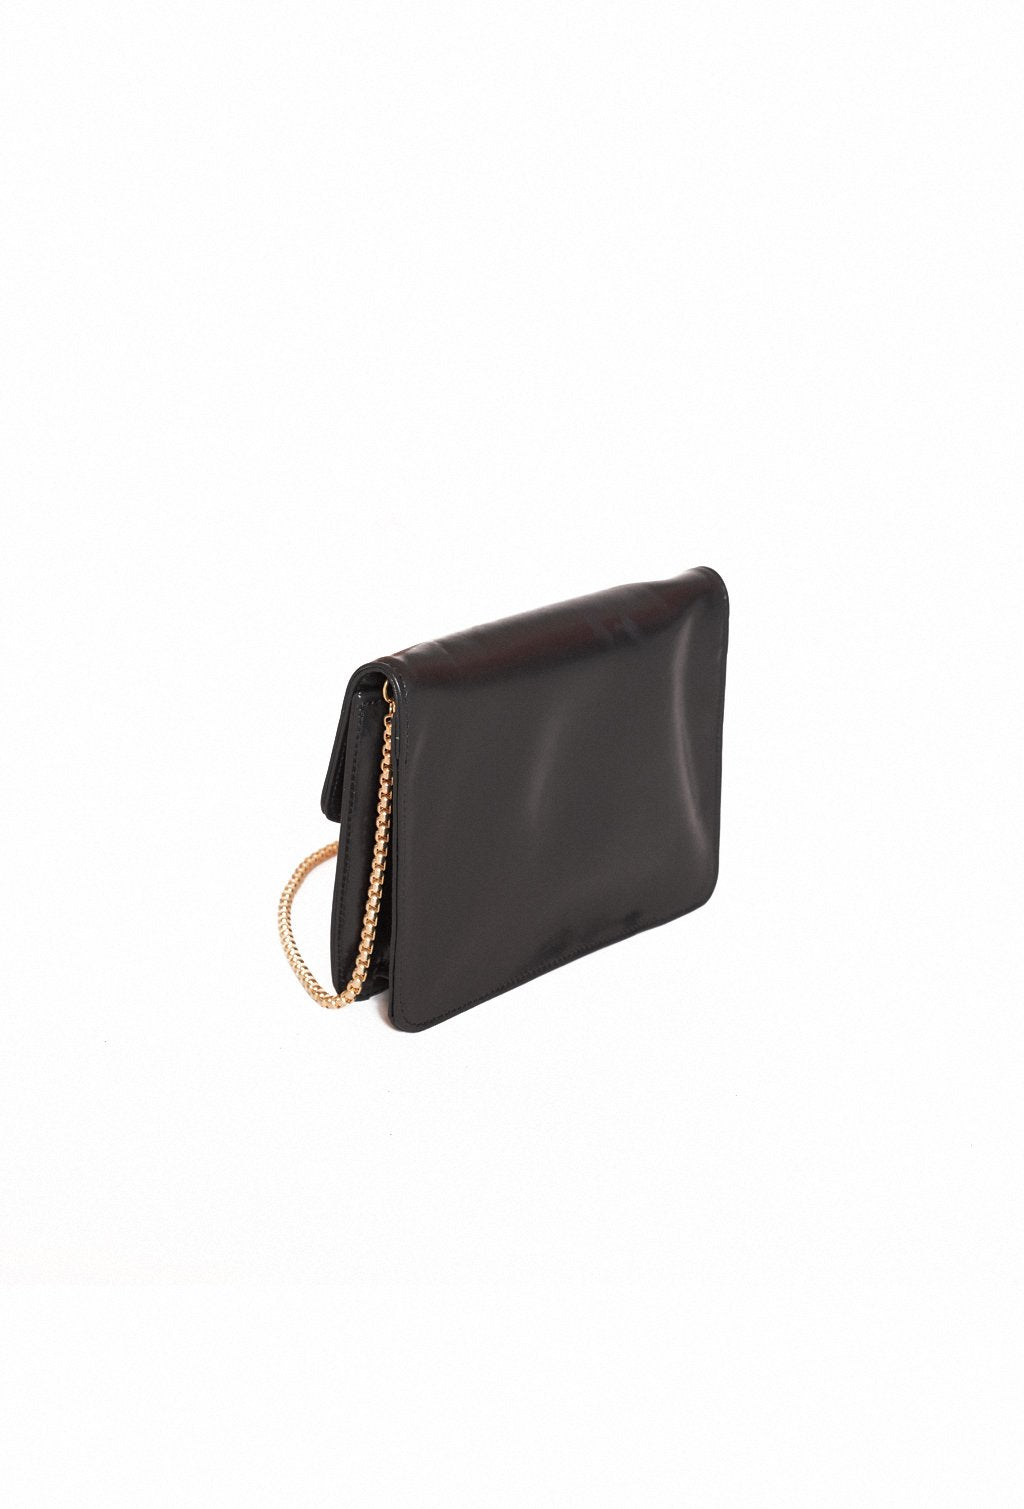 KUKI SMILE BLACK LEATHER PURSE